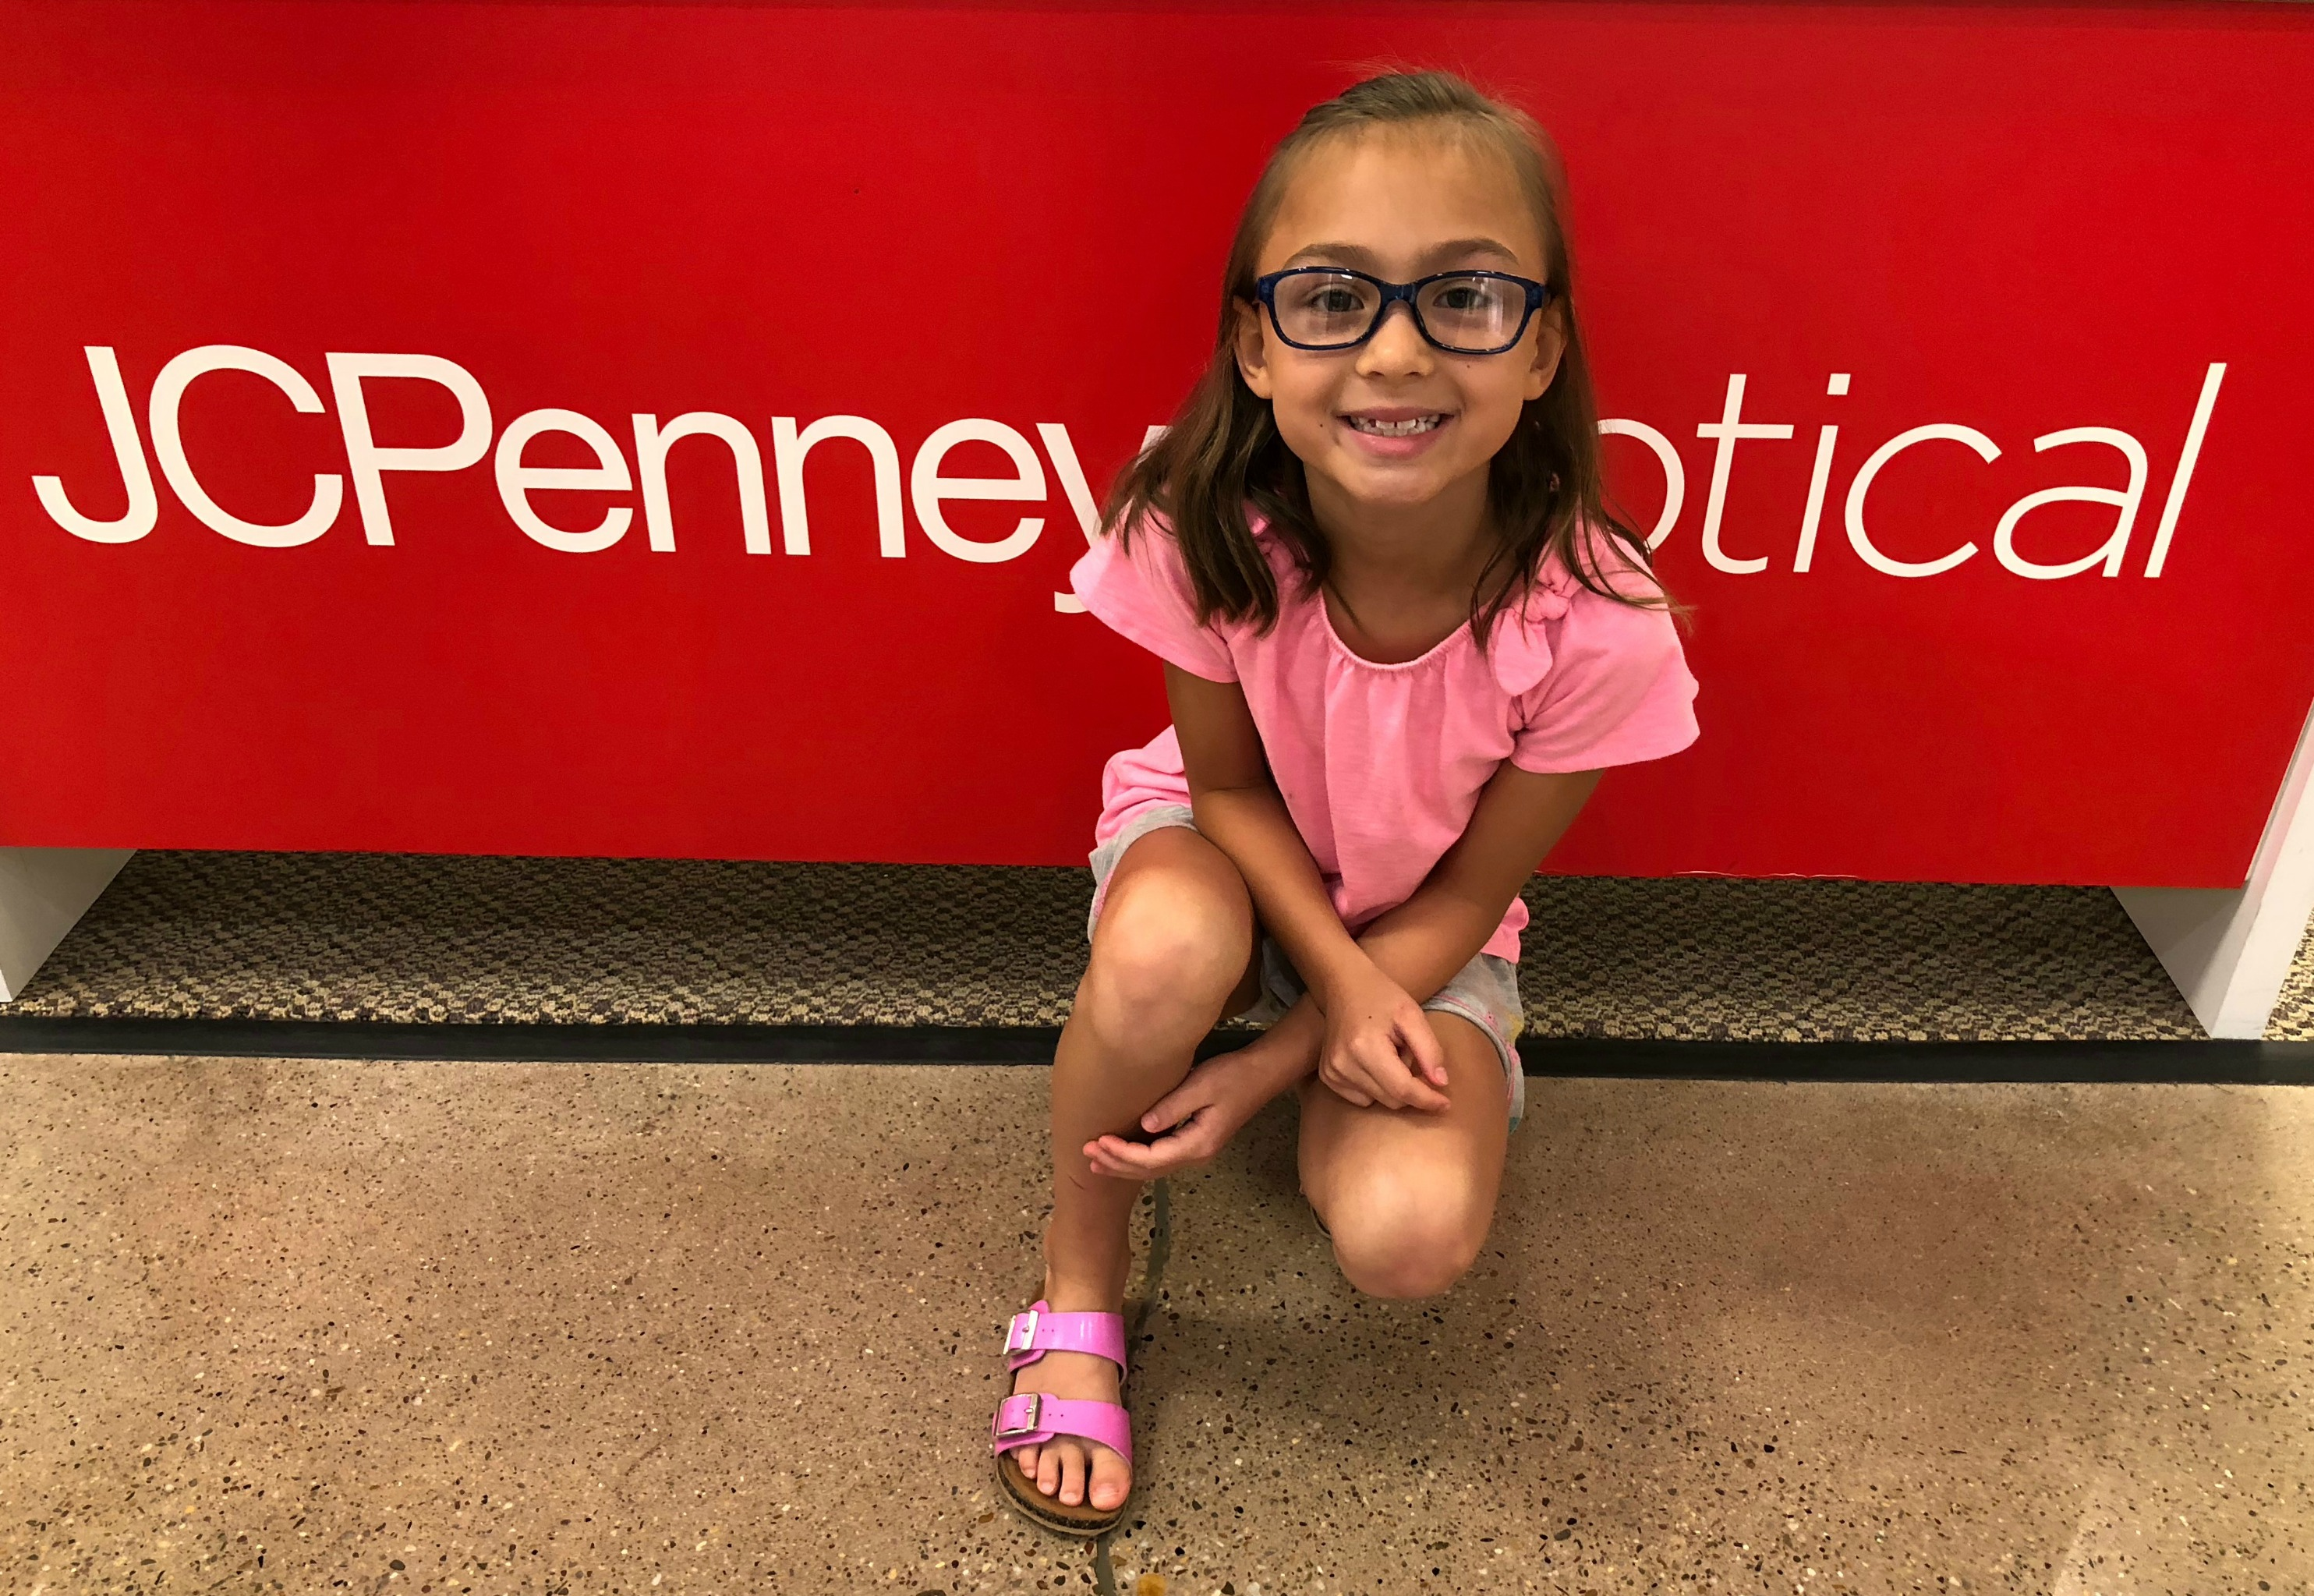 JCPenney Optical Back to School Glasses for Kids sale | Sponsor